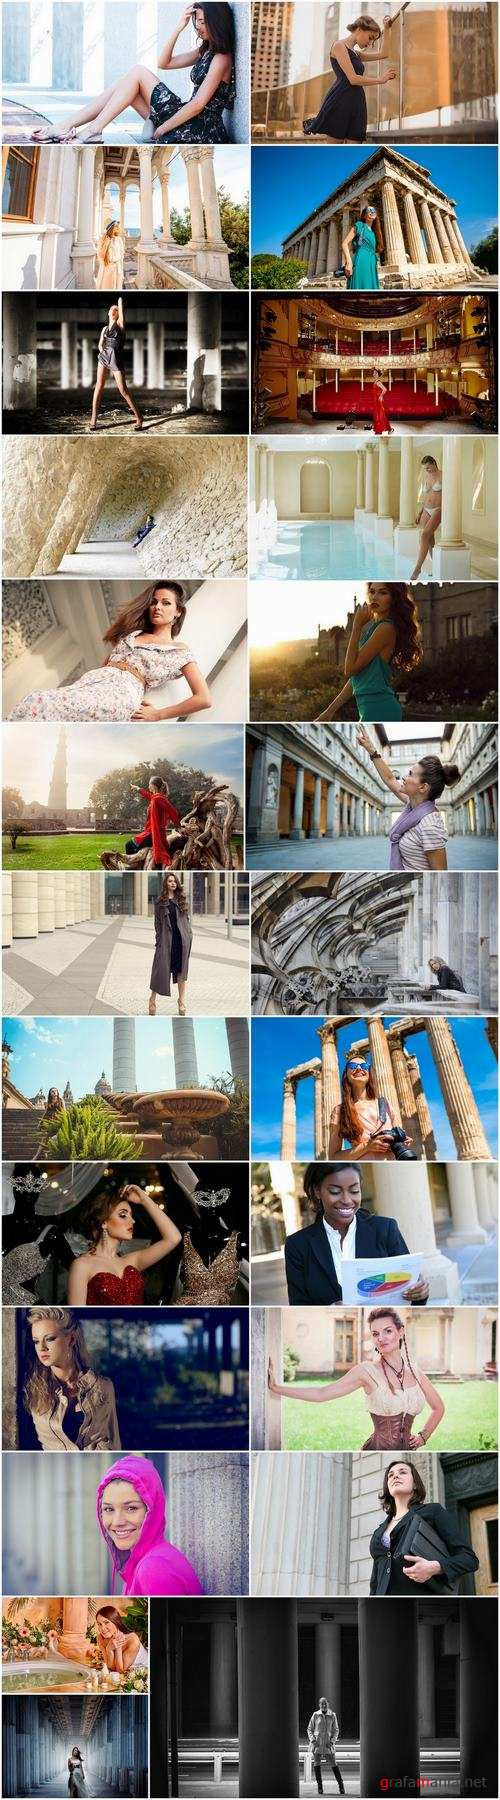 Woman girl wall column pillar country travel open world 25 HQ Jpeg